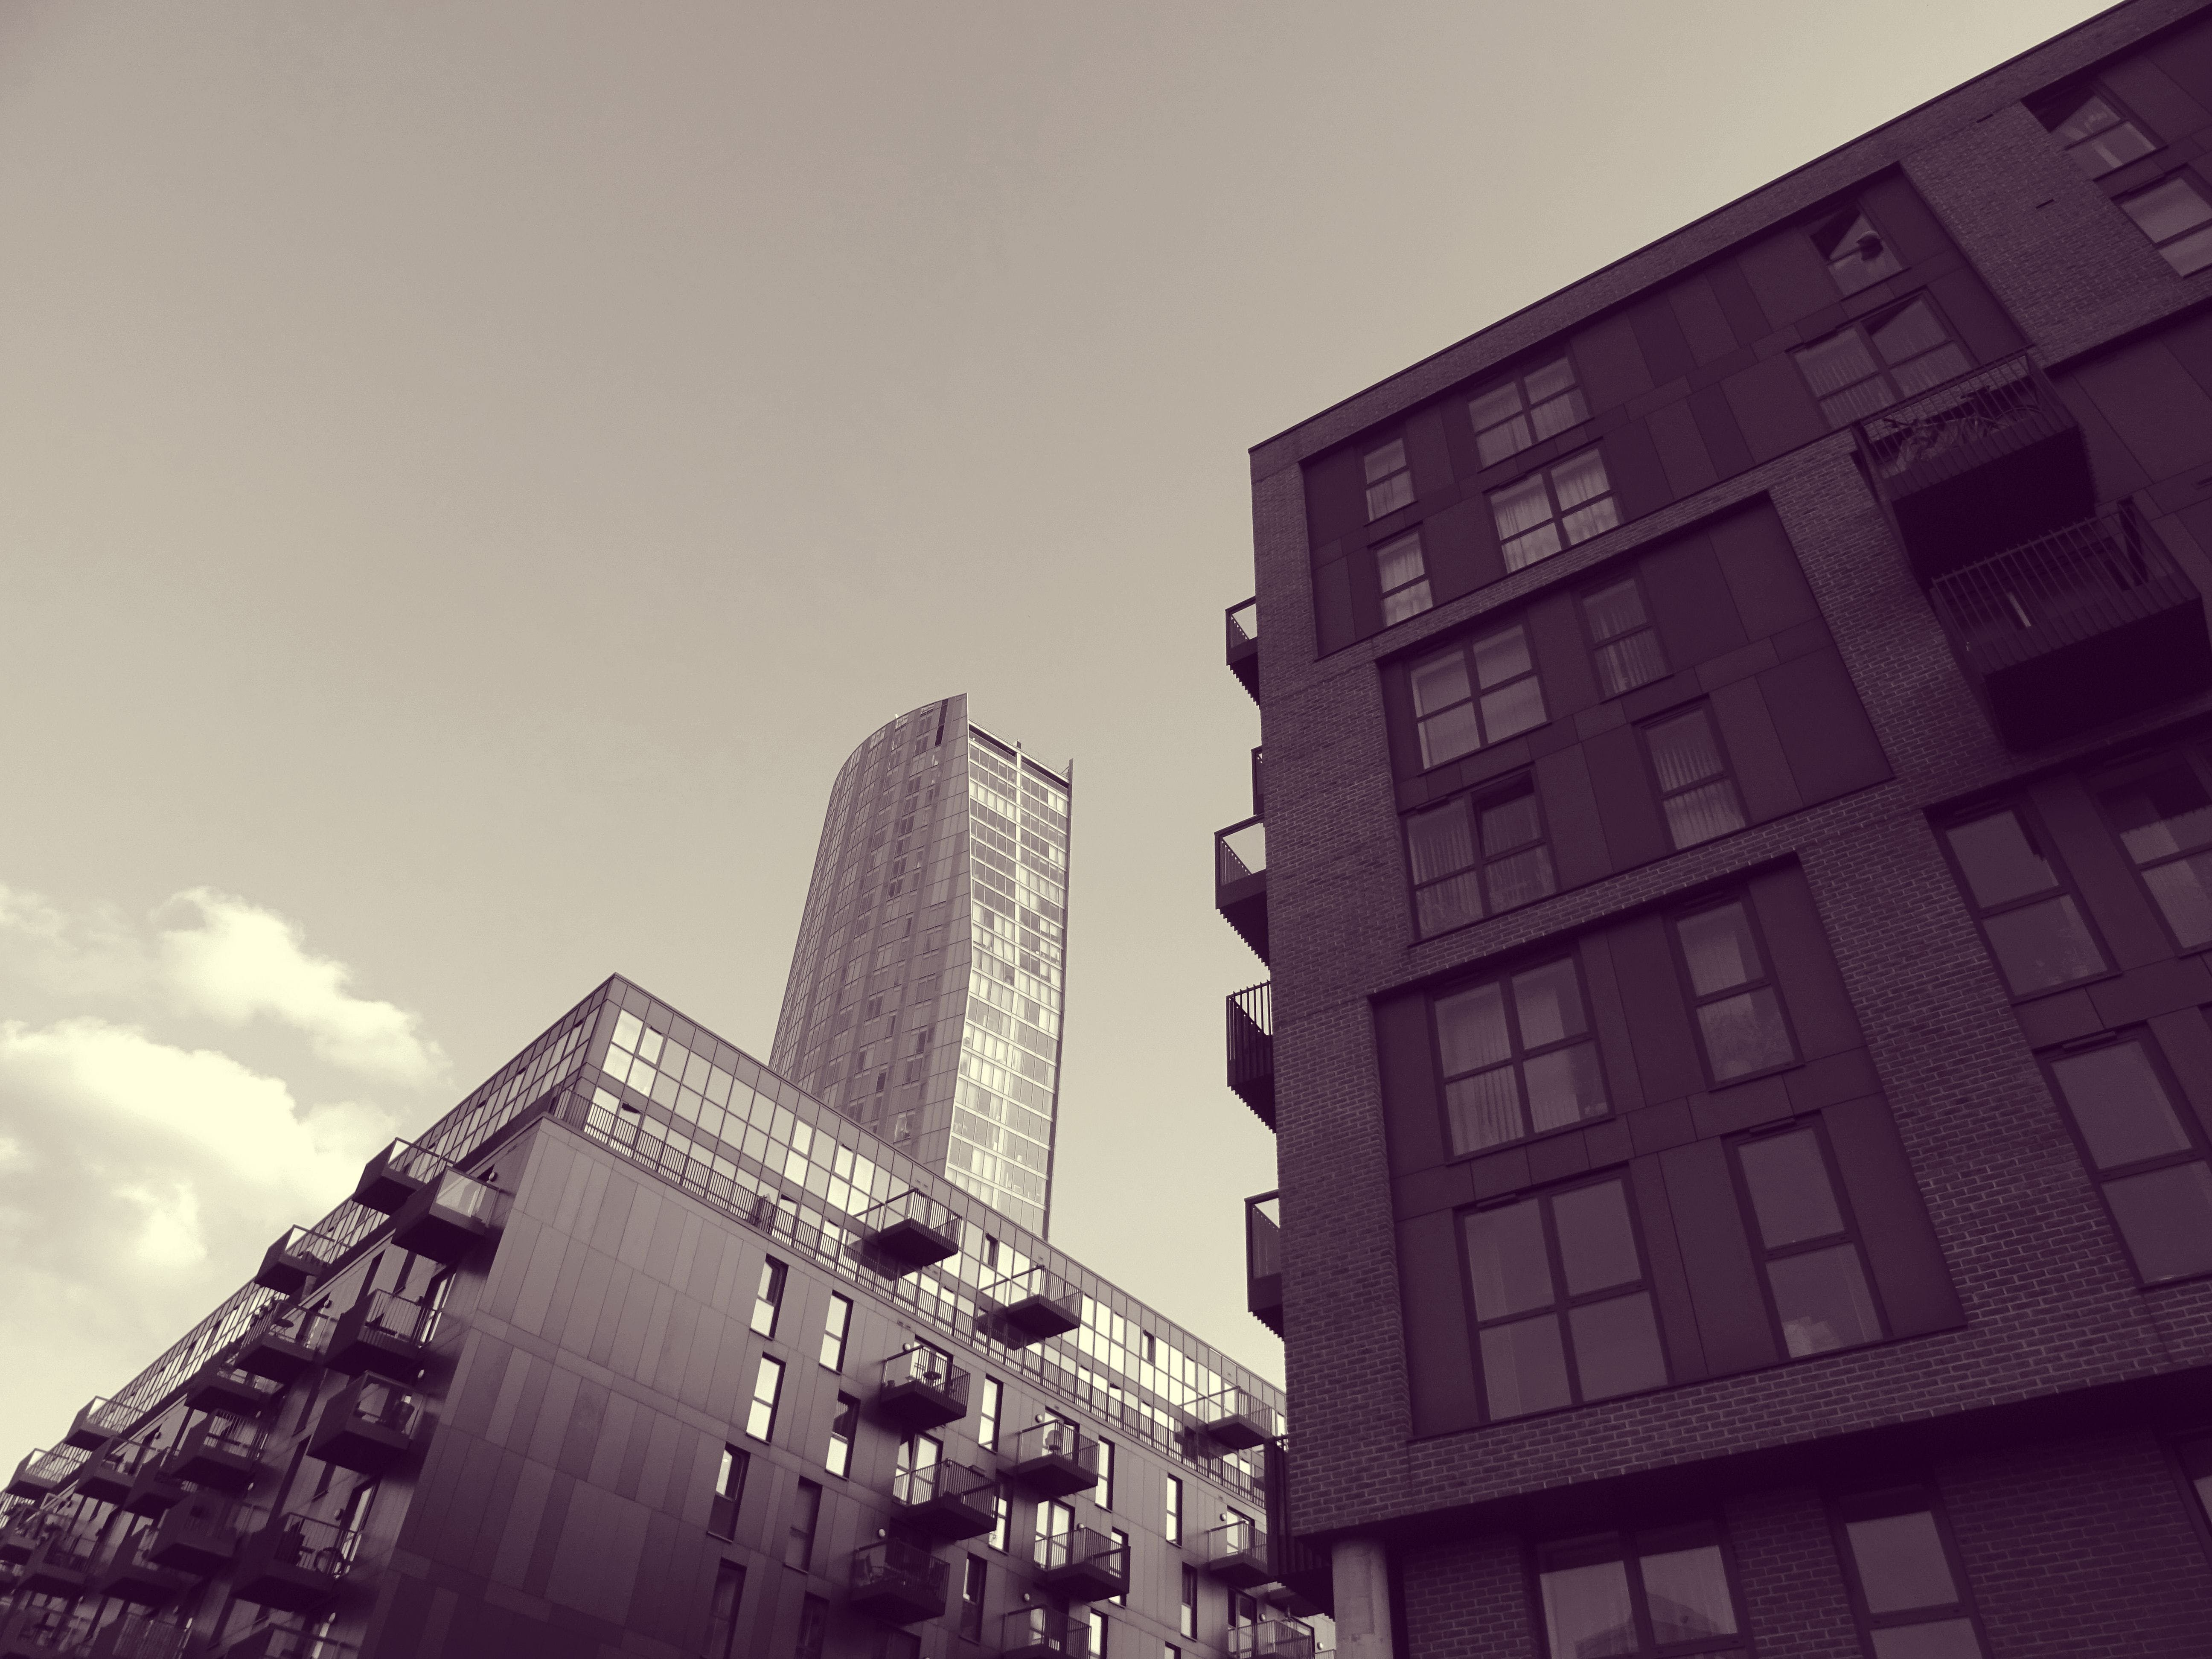 Grayscale and Low Angle Photography of High-rise Building Structures